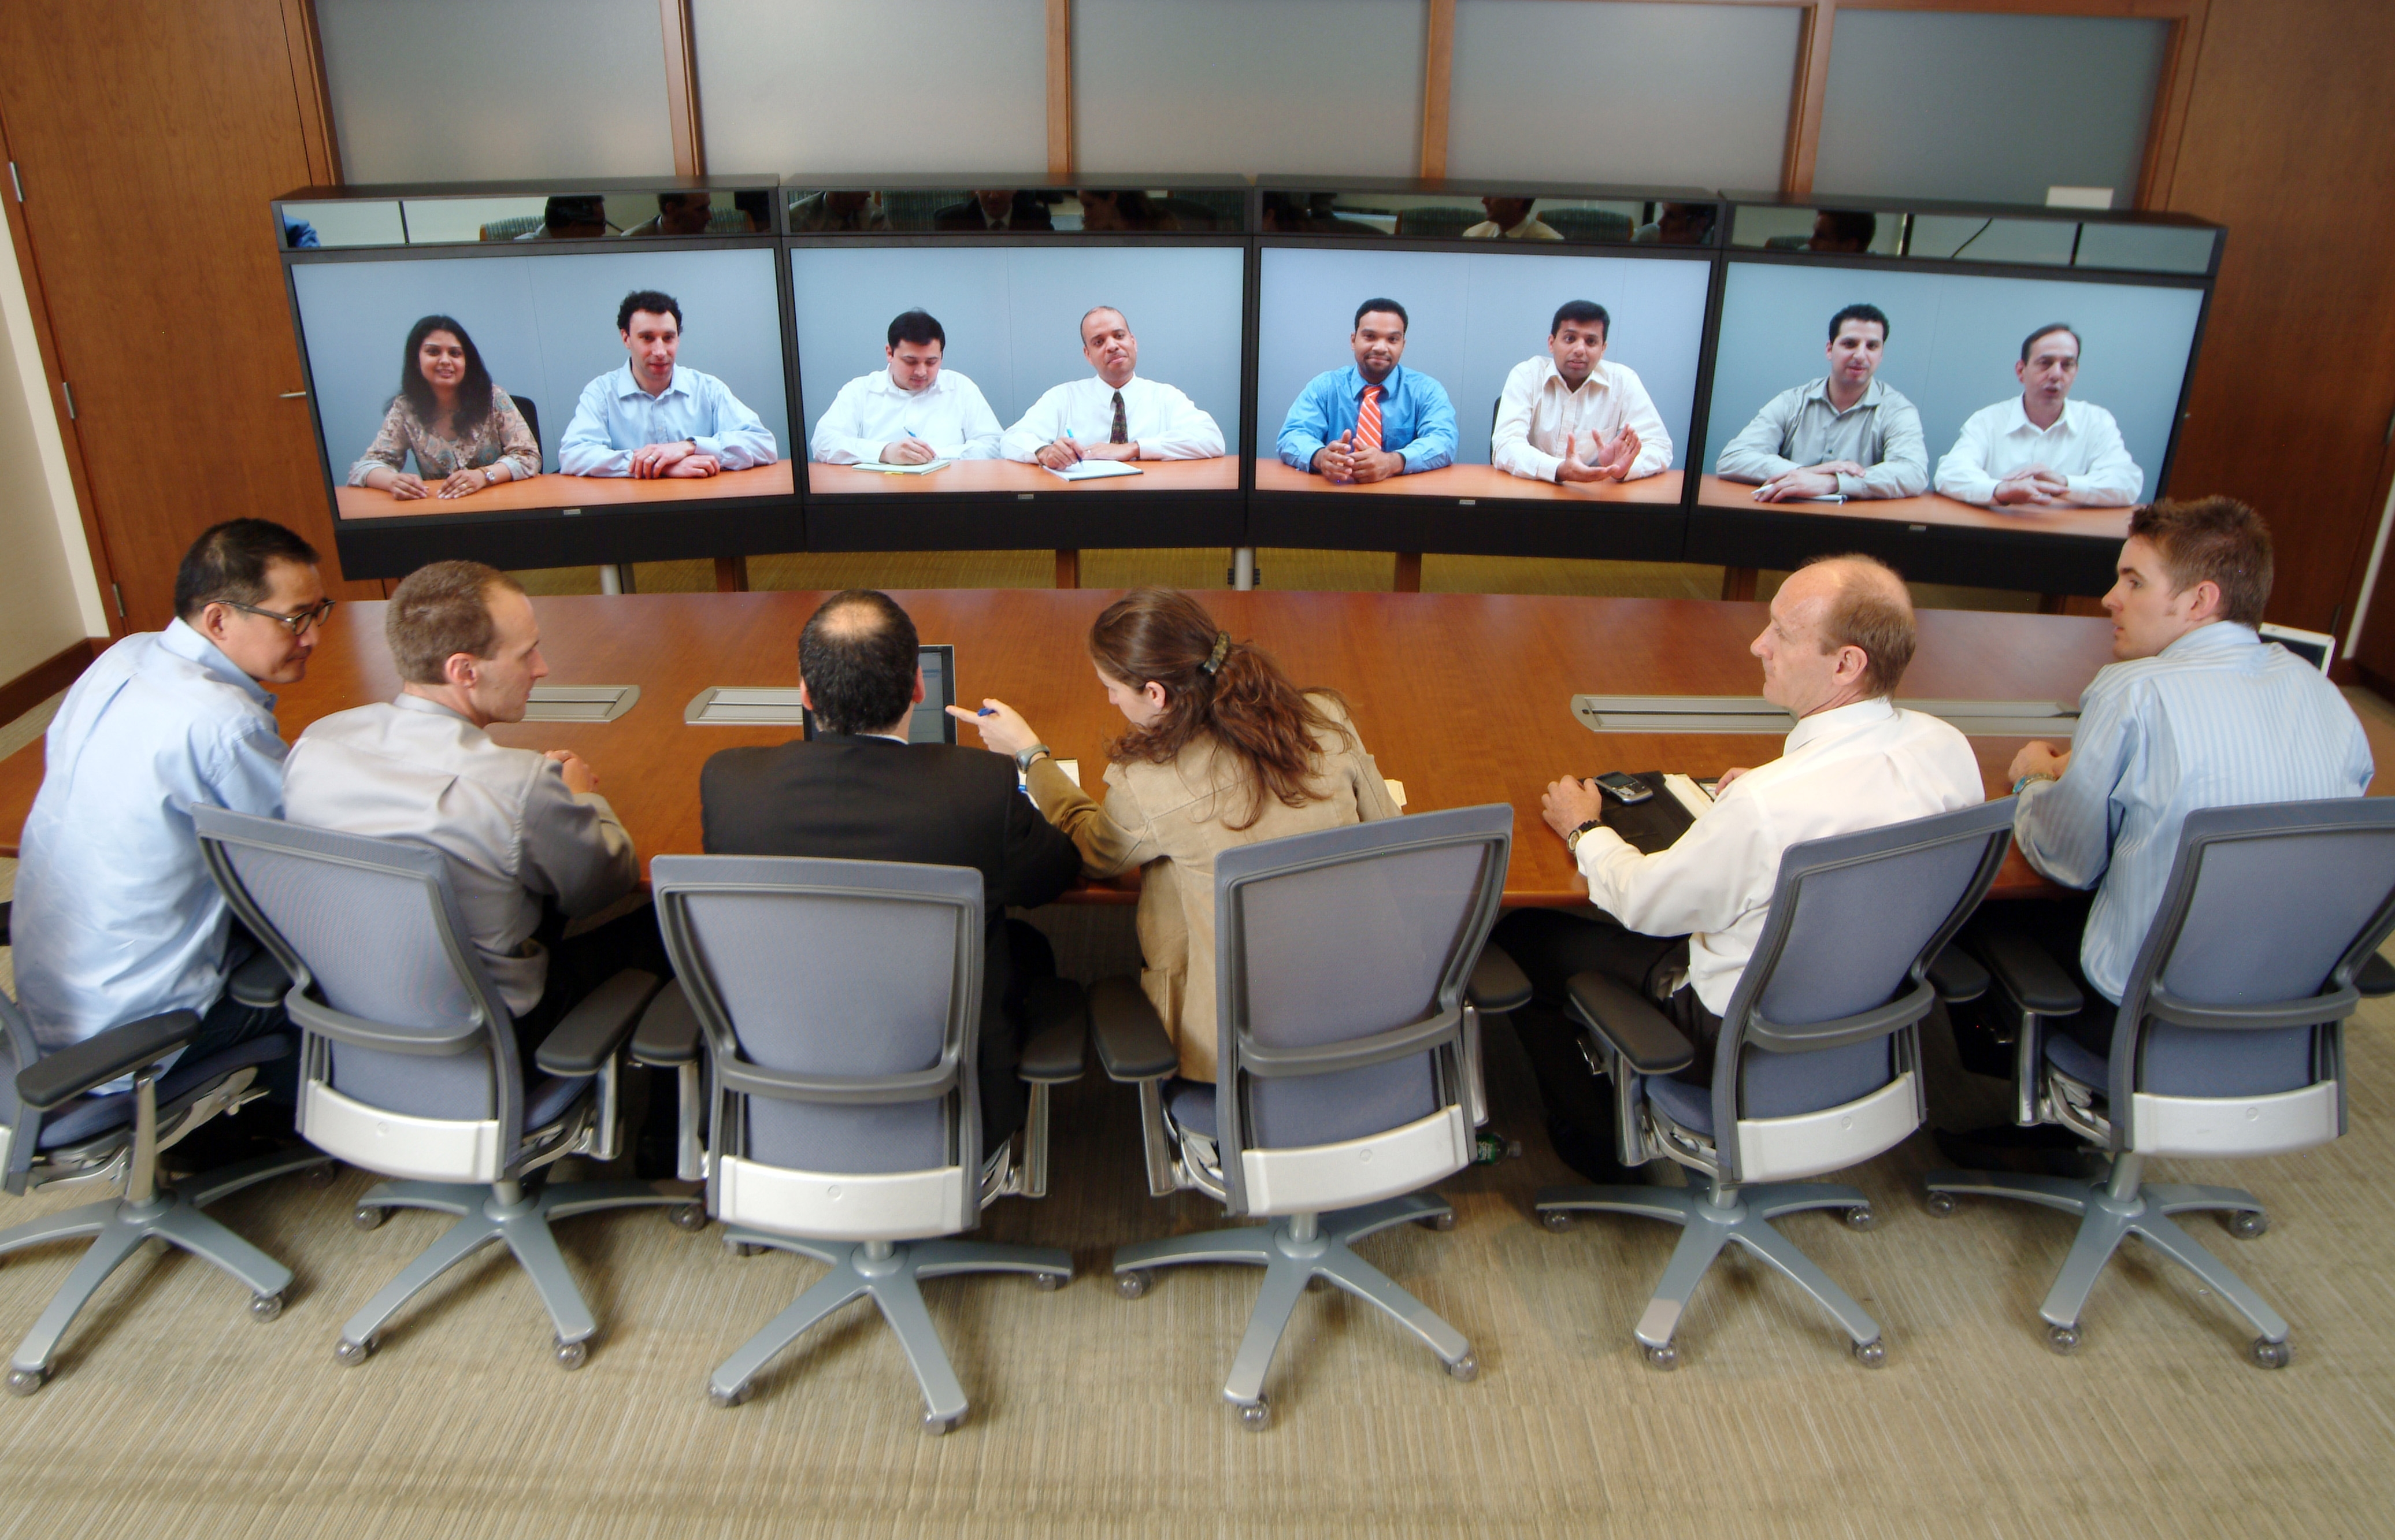 Top 6 Types of Organizations that Utilizes Video Conferencing -